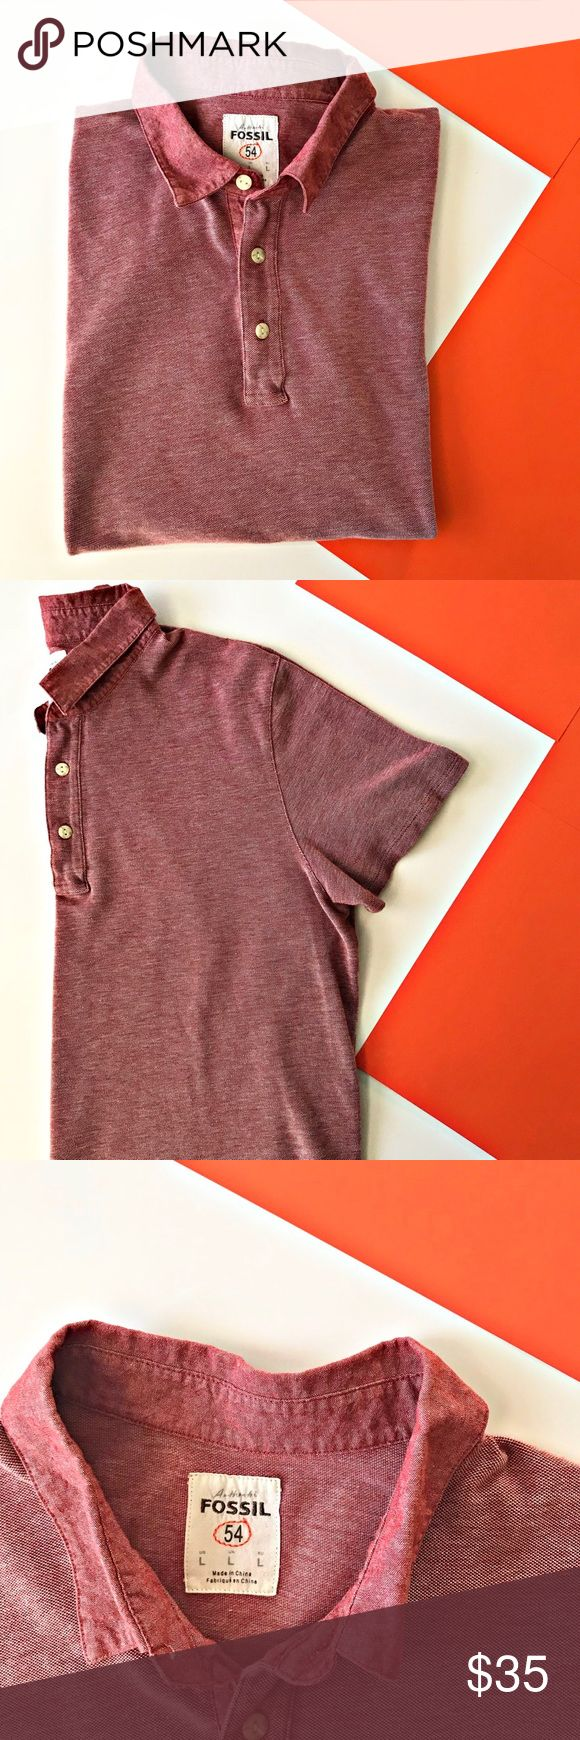 """Fossil Men's Short sleeve polo size L Fossil Men's Red/Orange Short Sleeve Polo Size Large. Excellent condition. Zero stains or rips. Comfy, casual and pretty much NWOT. Fits more on the slim side FYI.  Approximate Measurements:  Pit to Pit Flat: 22"""" Shoulder Seam to sleeve cuff: 8"""" Back of neck to bottom: 26"""" Fossil Shirts Polos"""